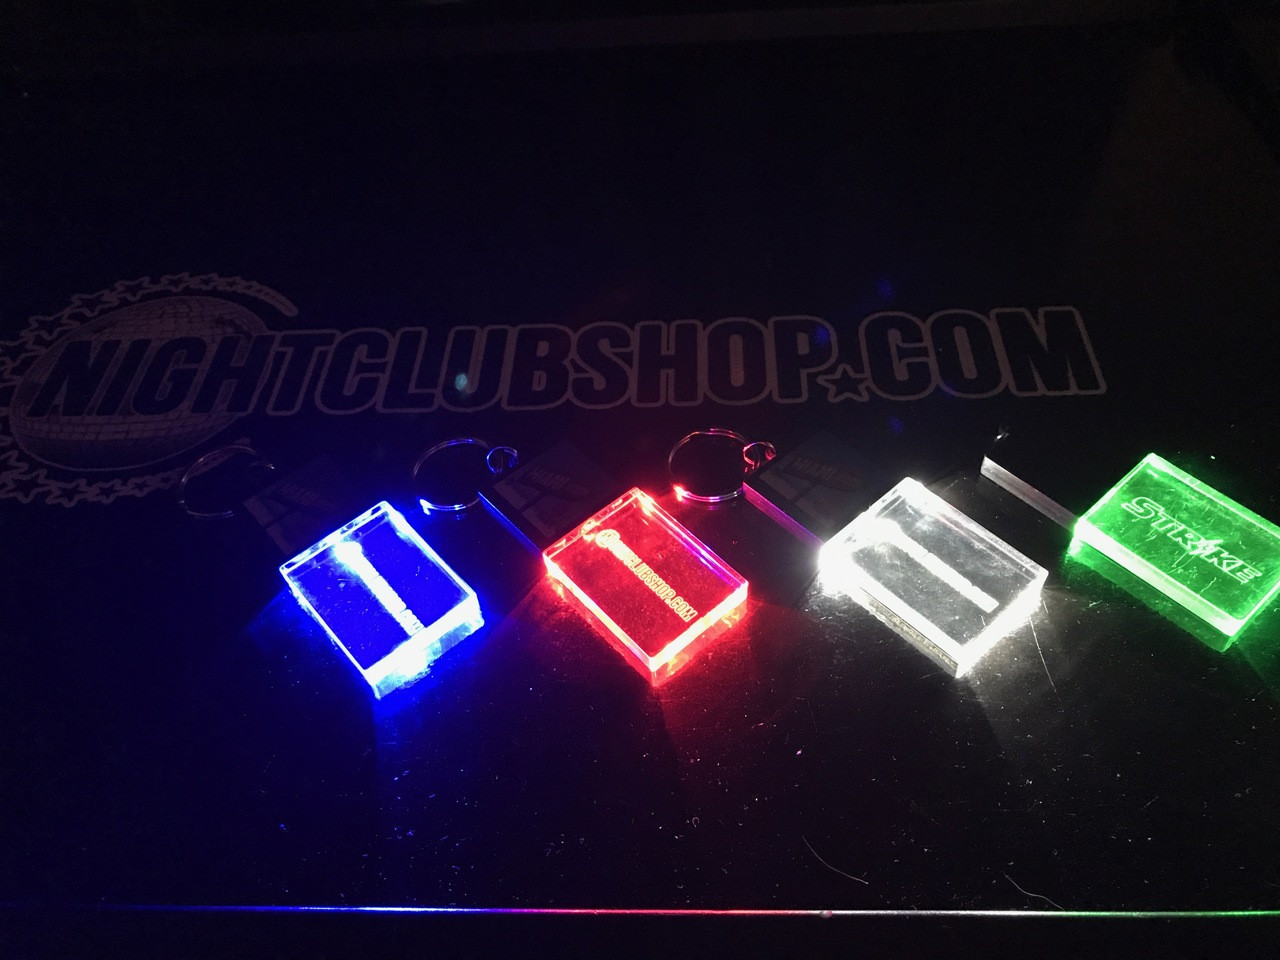 Light up,LED,Keychain,Key,chain,LED keychain, custom, BEAM, dual, print,engraved, logo,text, laser engraved,personalized,promo,merch,fundraiser,nightclub,fund raiser